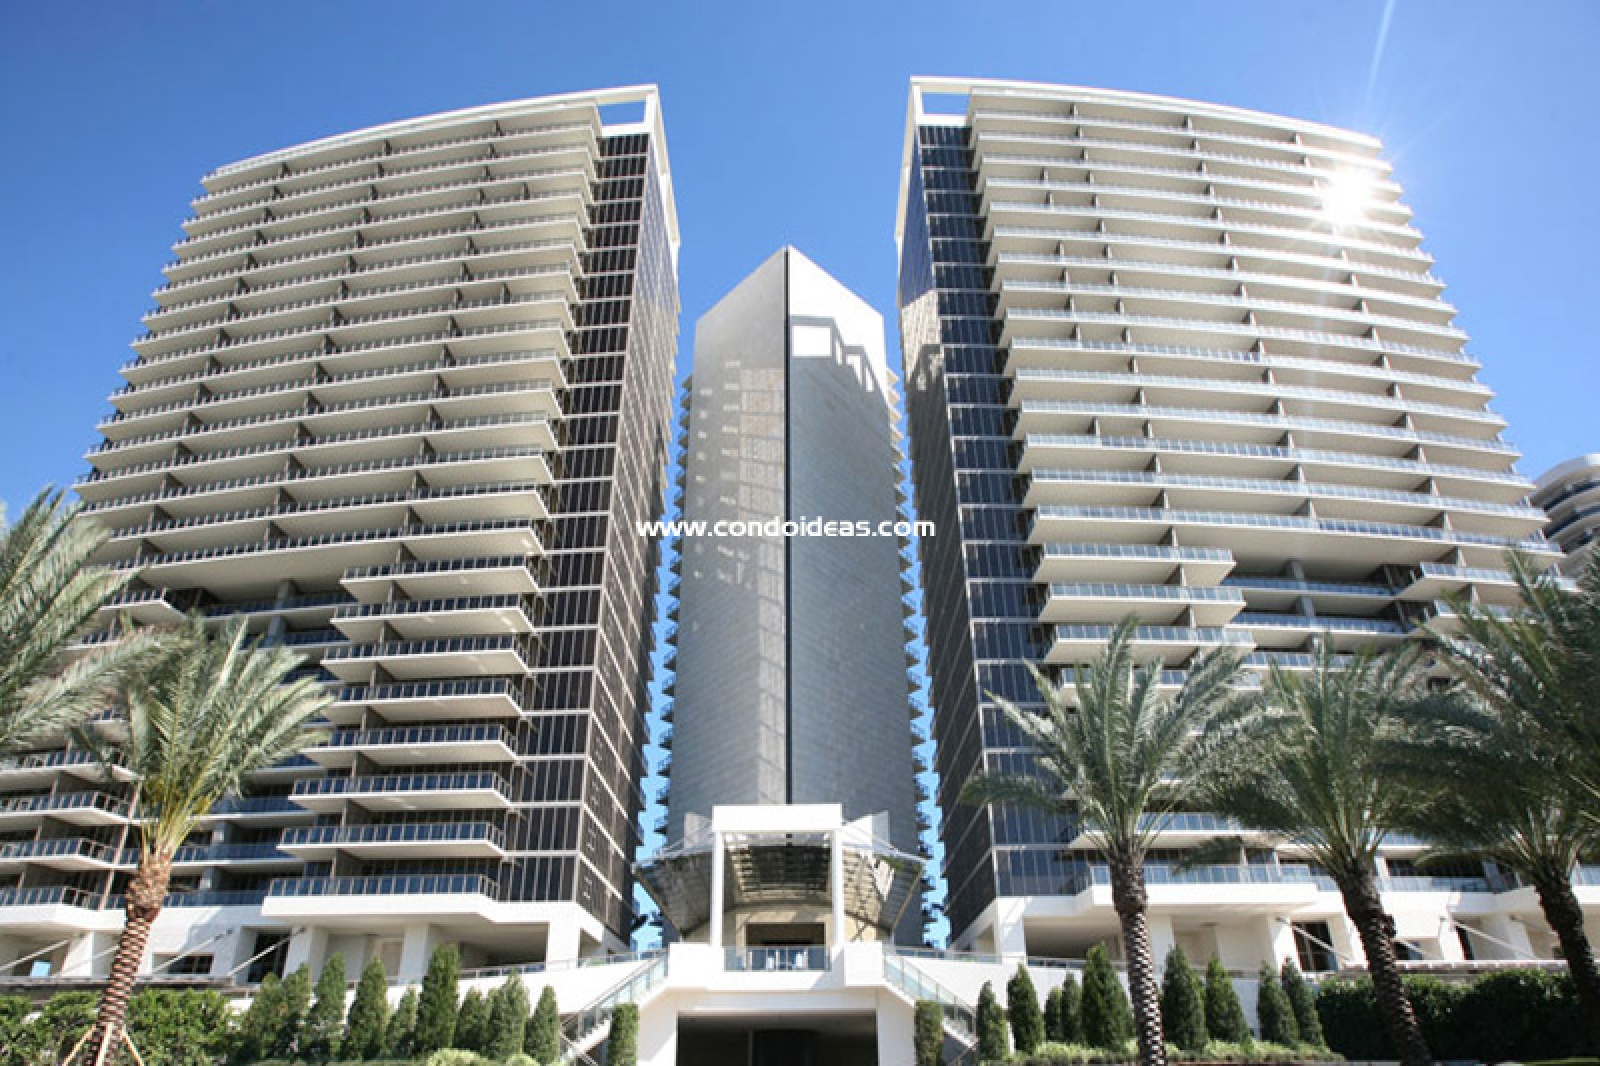 St regis bal harbour condo for St regis